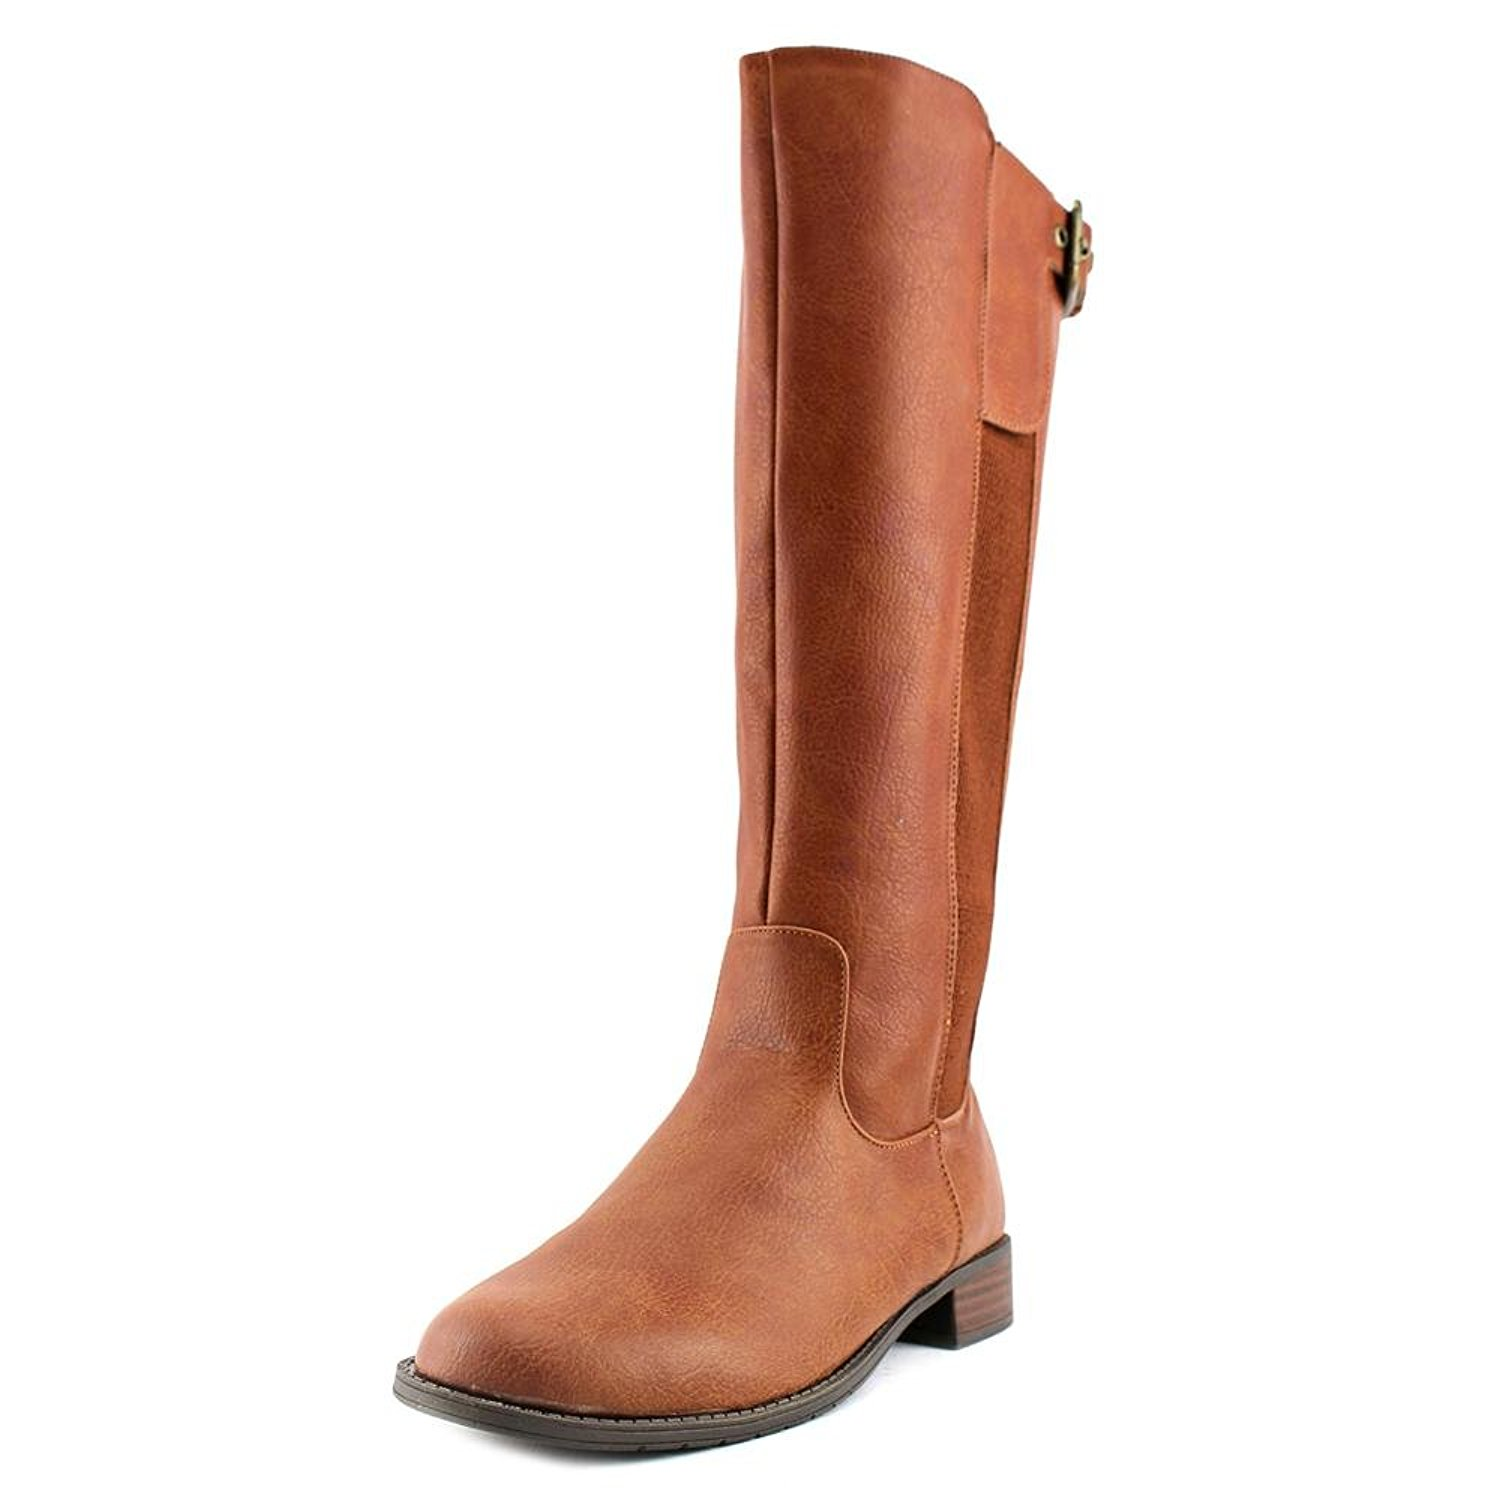 Kenneth Cole Unlisted Womens Spare Star Almond Toe Knee High Fashion Boots